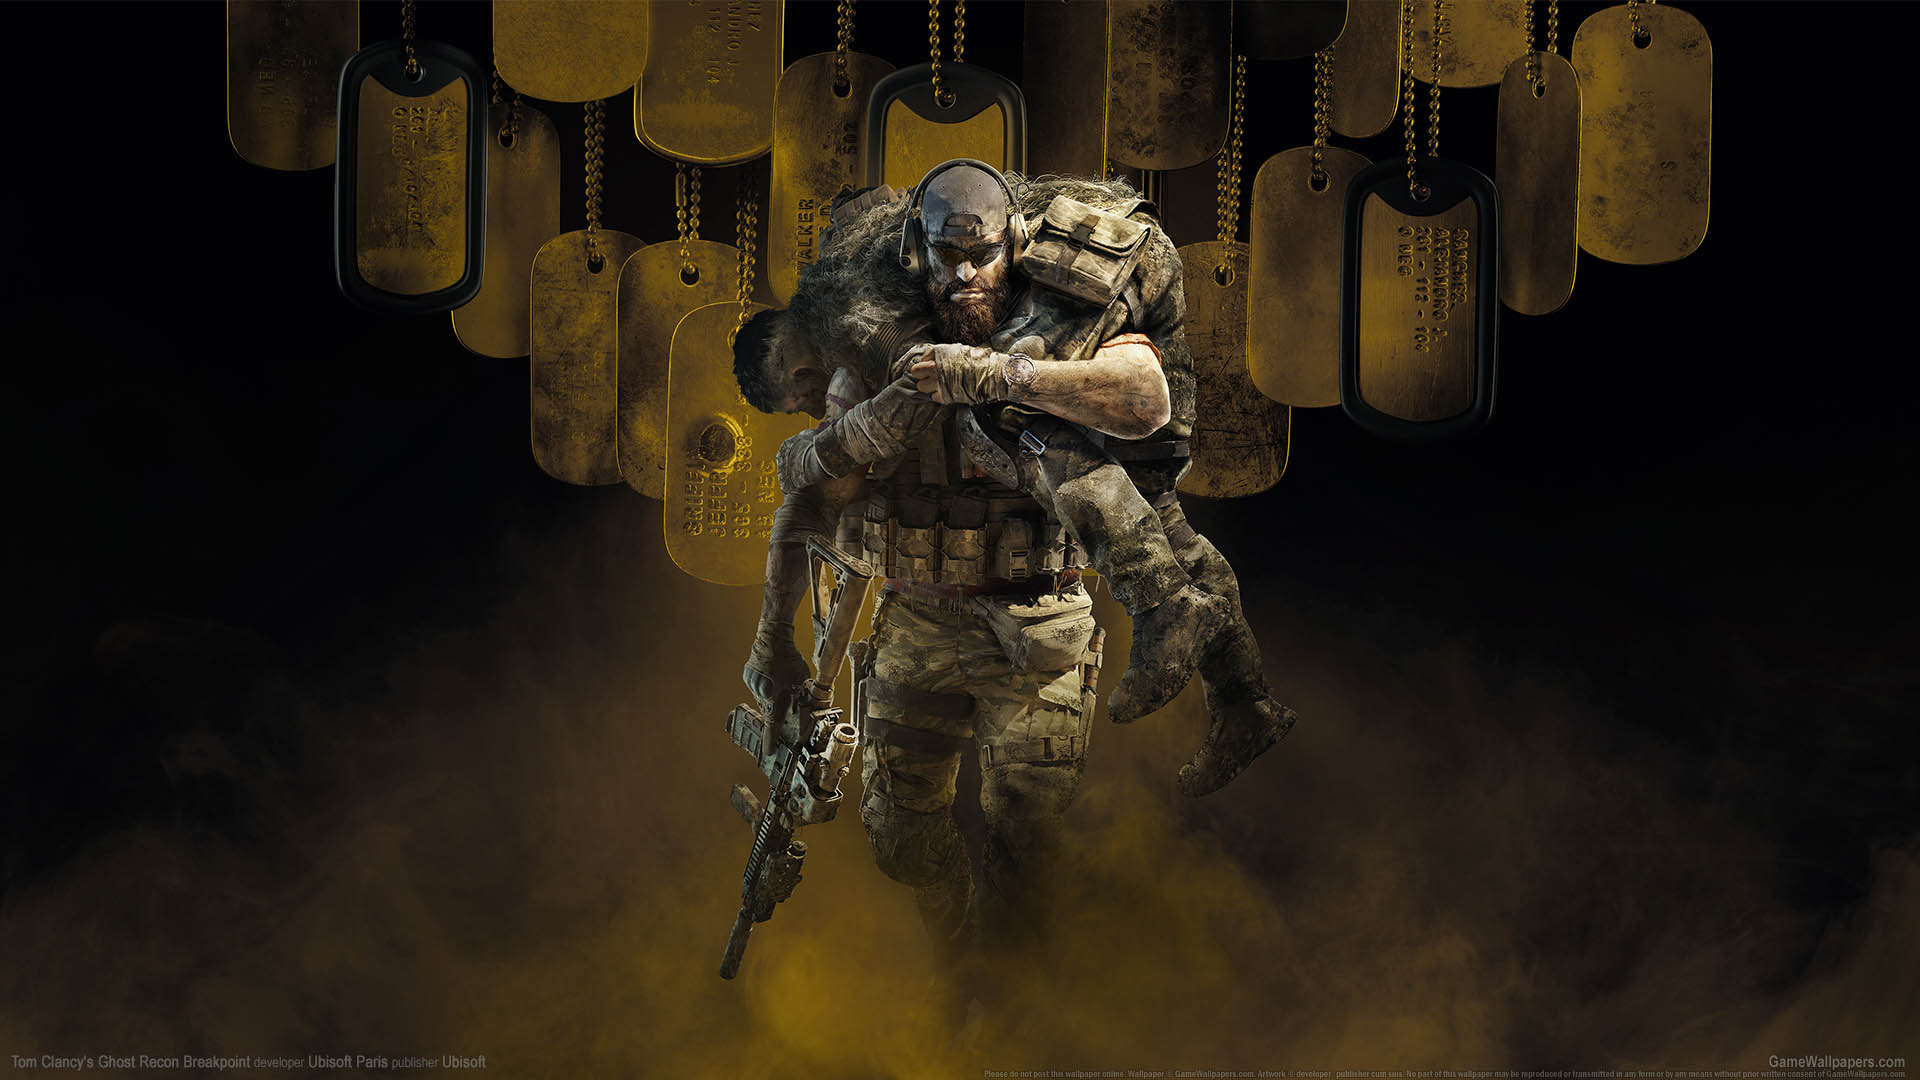 Tom Clancy's Ghost Recon Breakpoint wallpaper 01 1920x1080